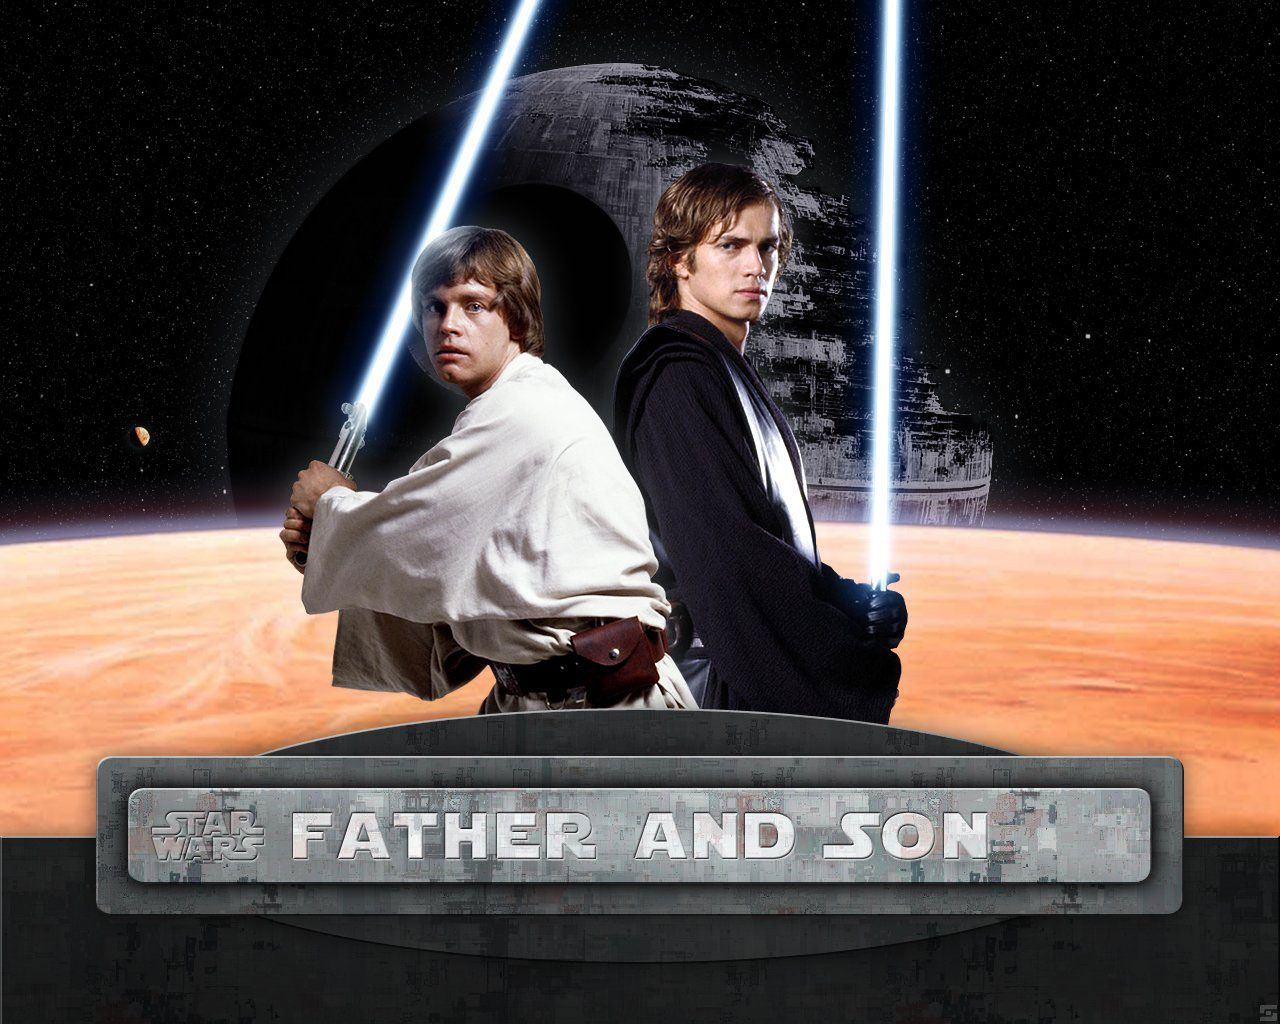 anakin luke skywalker - Google Search (With images) | Star ...